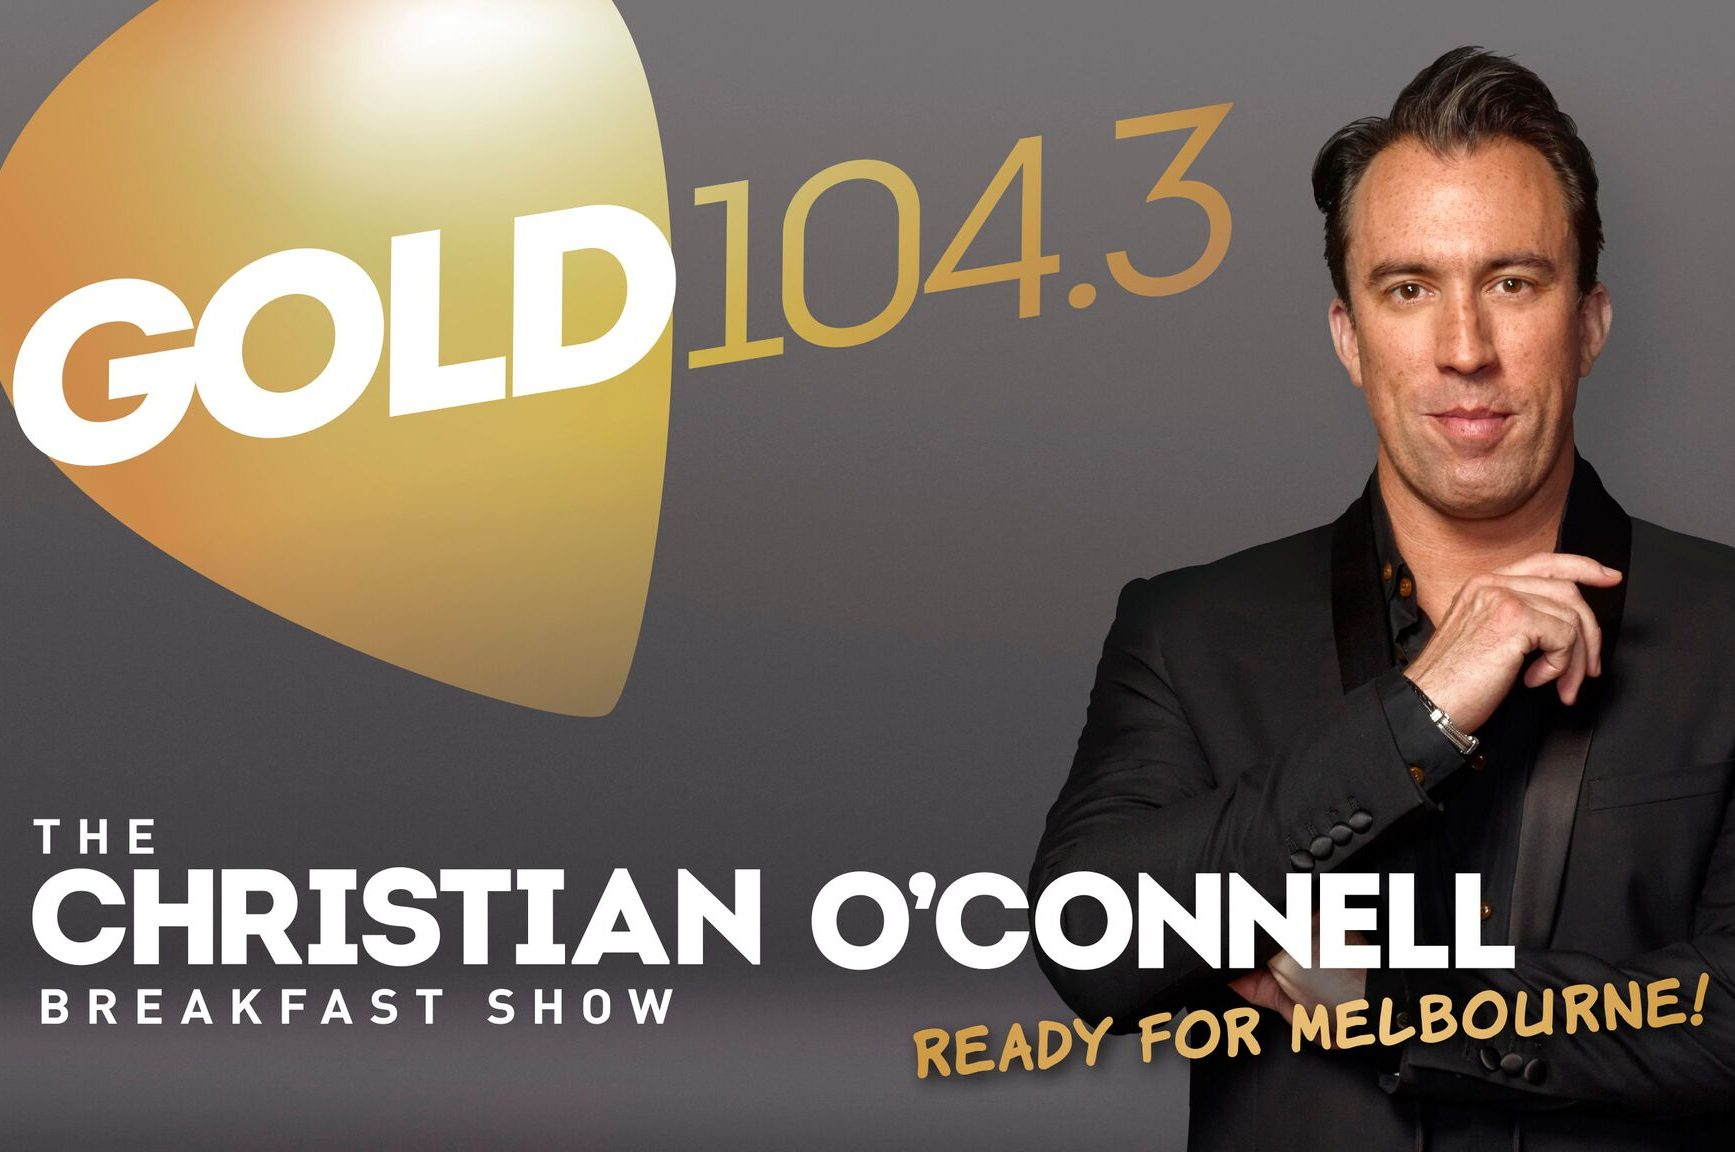 ARN Launches Ready For Melbourne Campaign For New Host Christian O